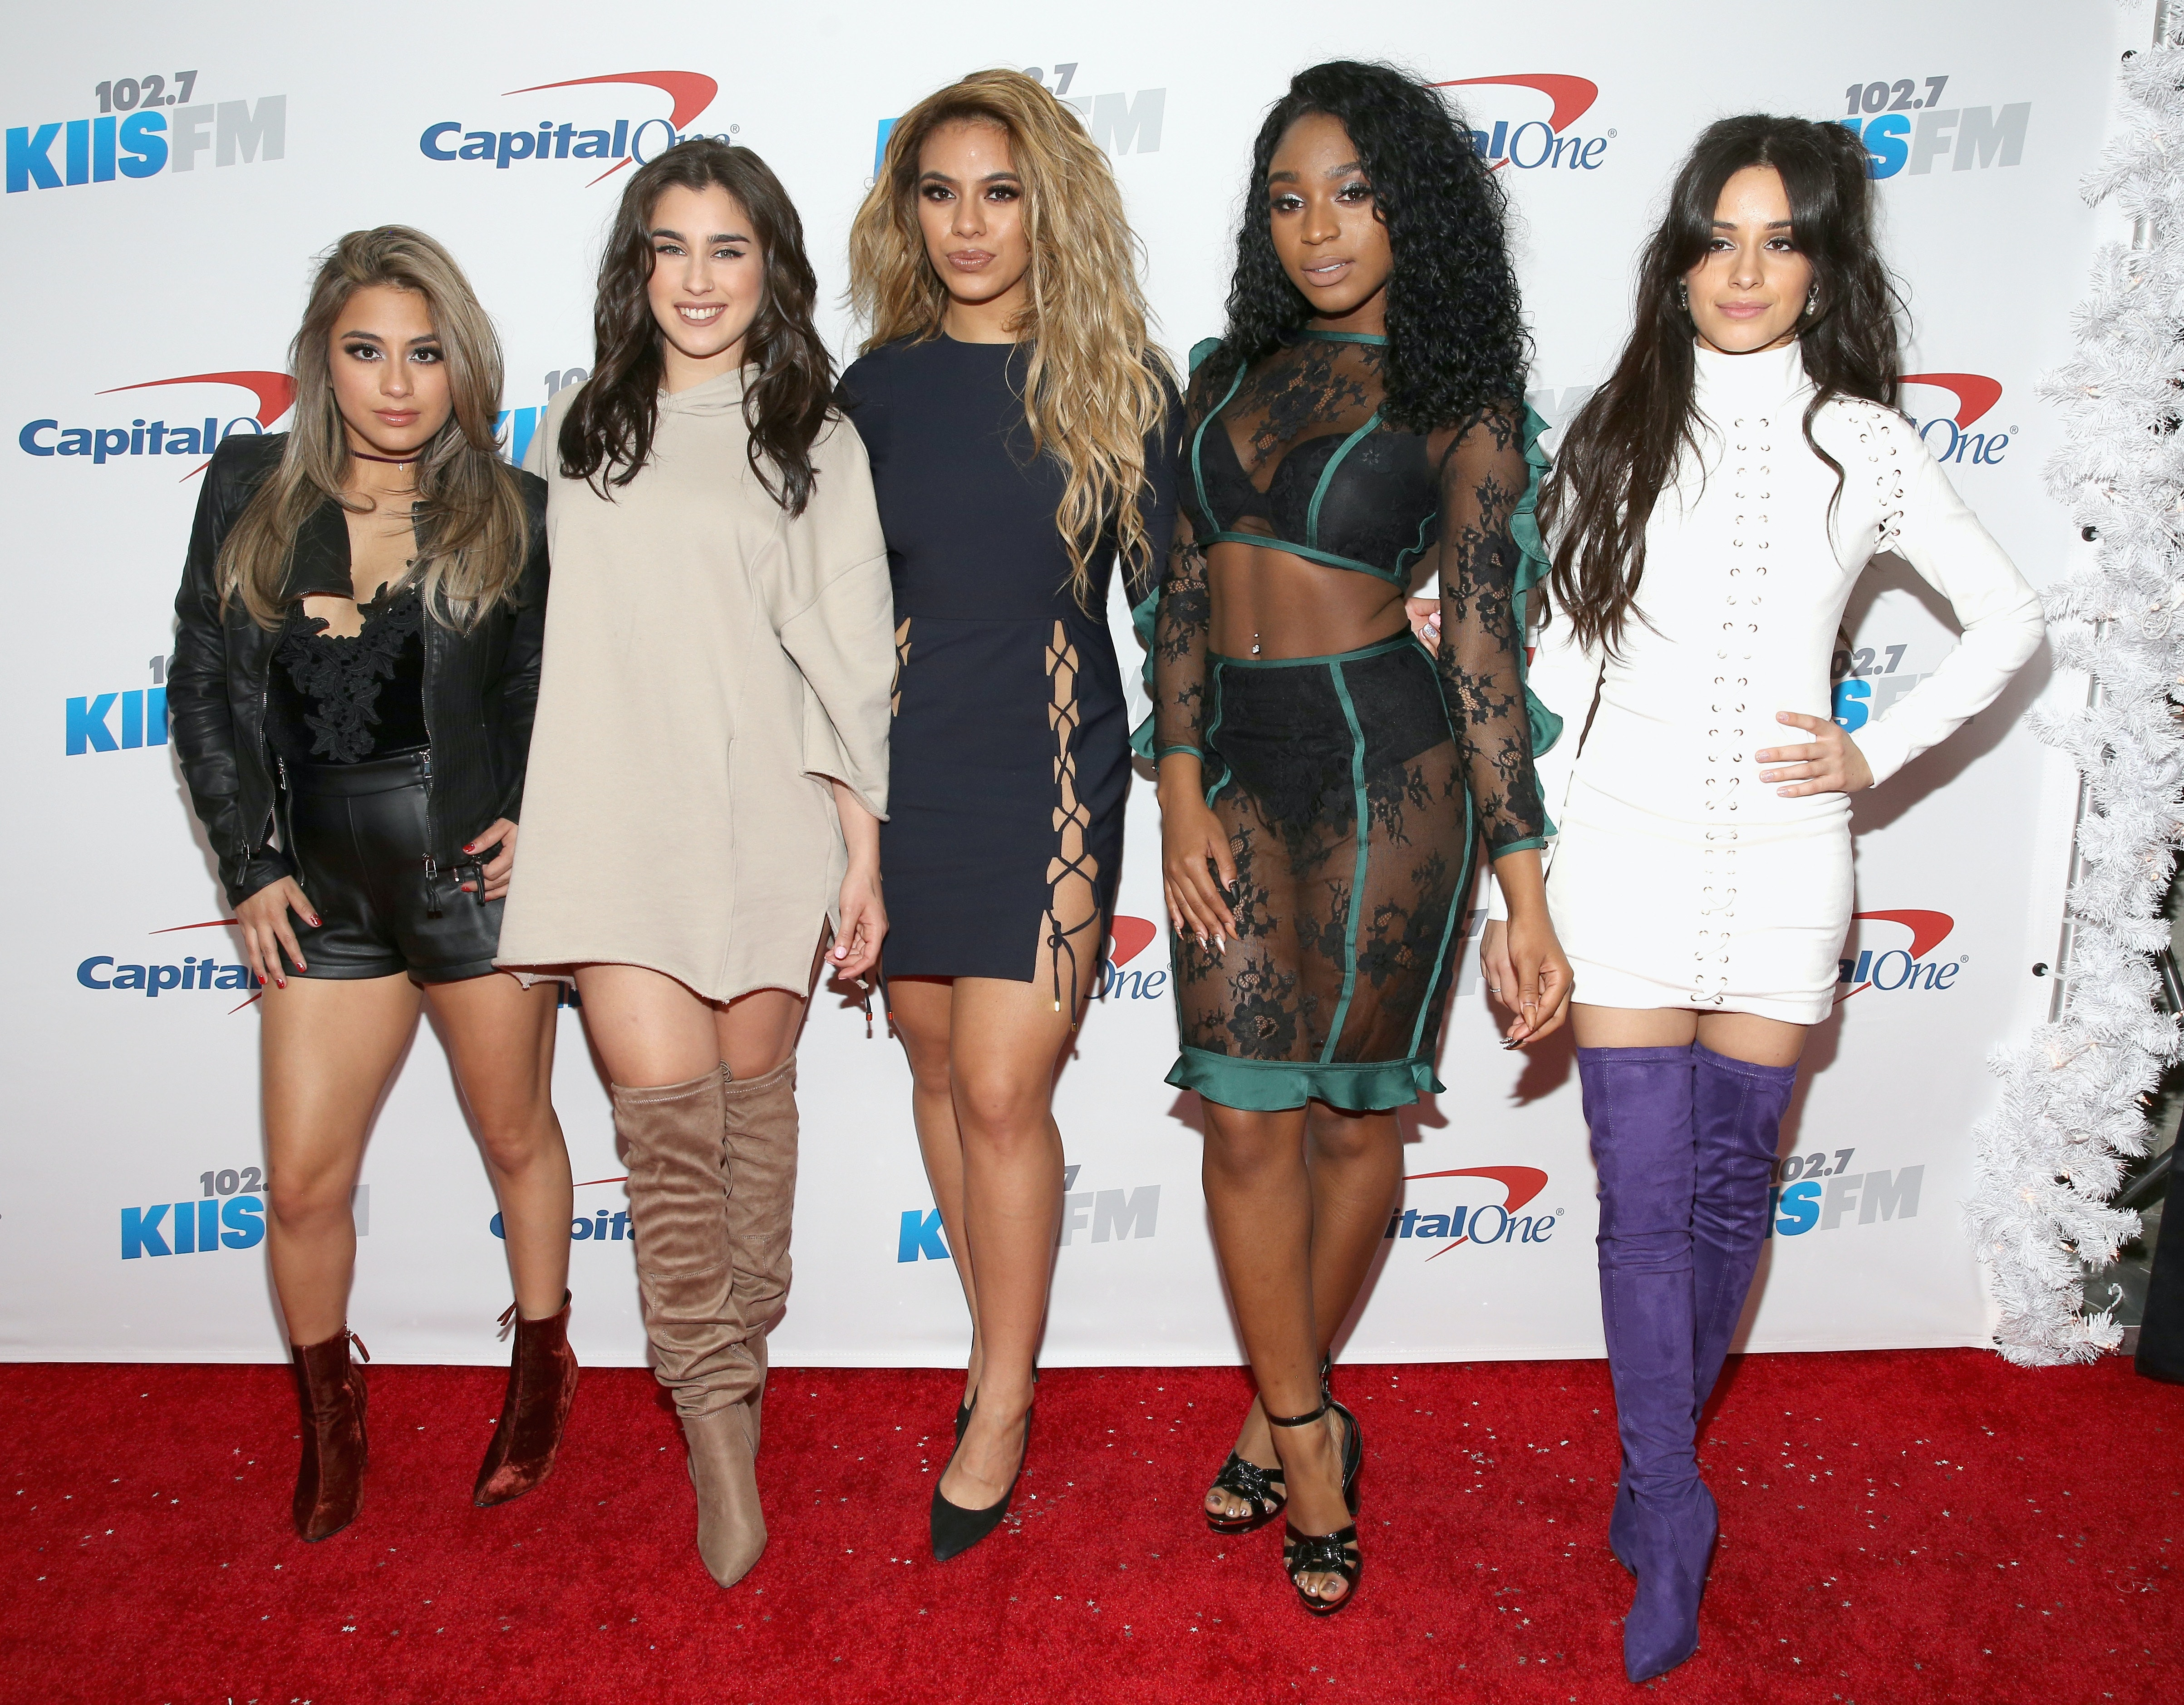 The Real Reason Camila Cabello Quit Fifth Harmony Is So So Unfortunate